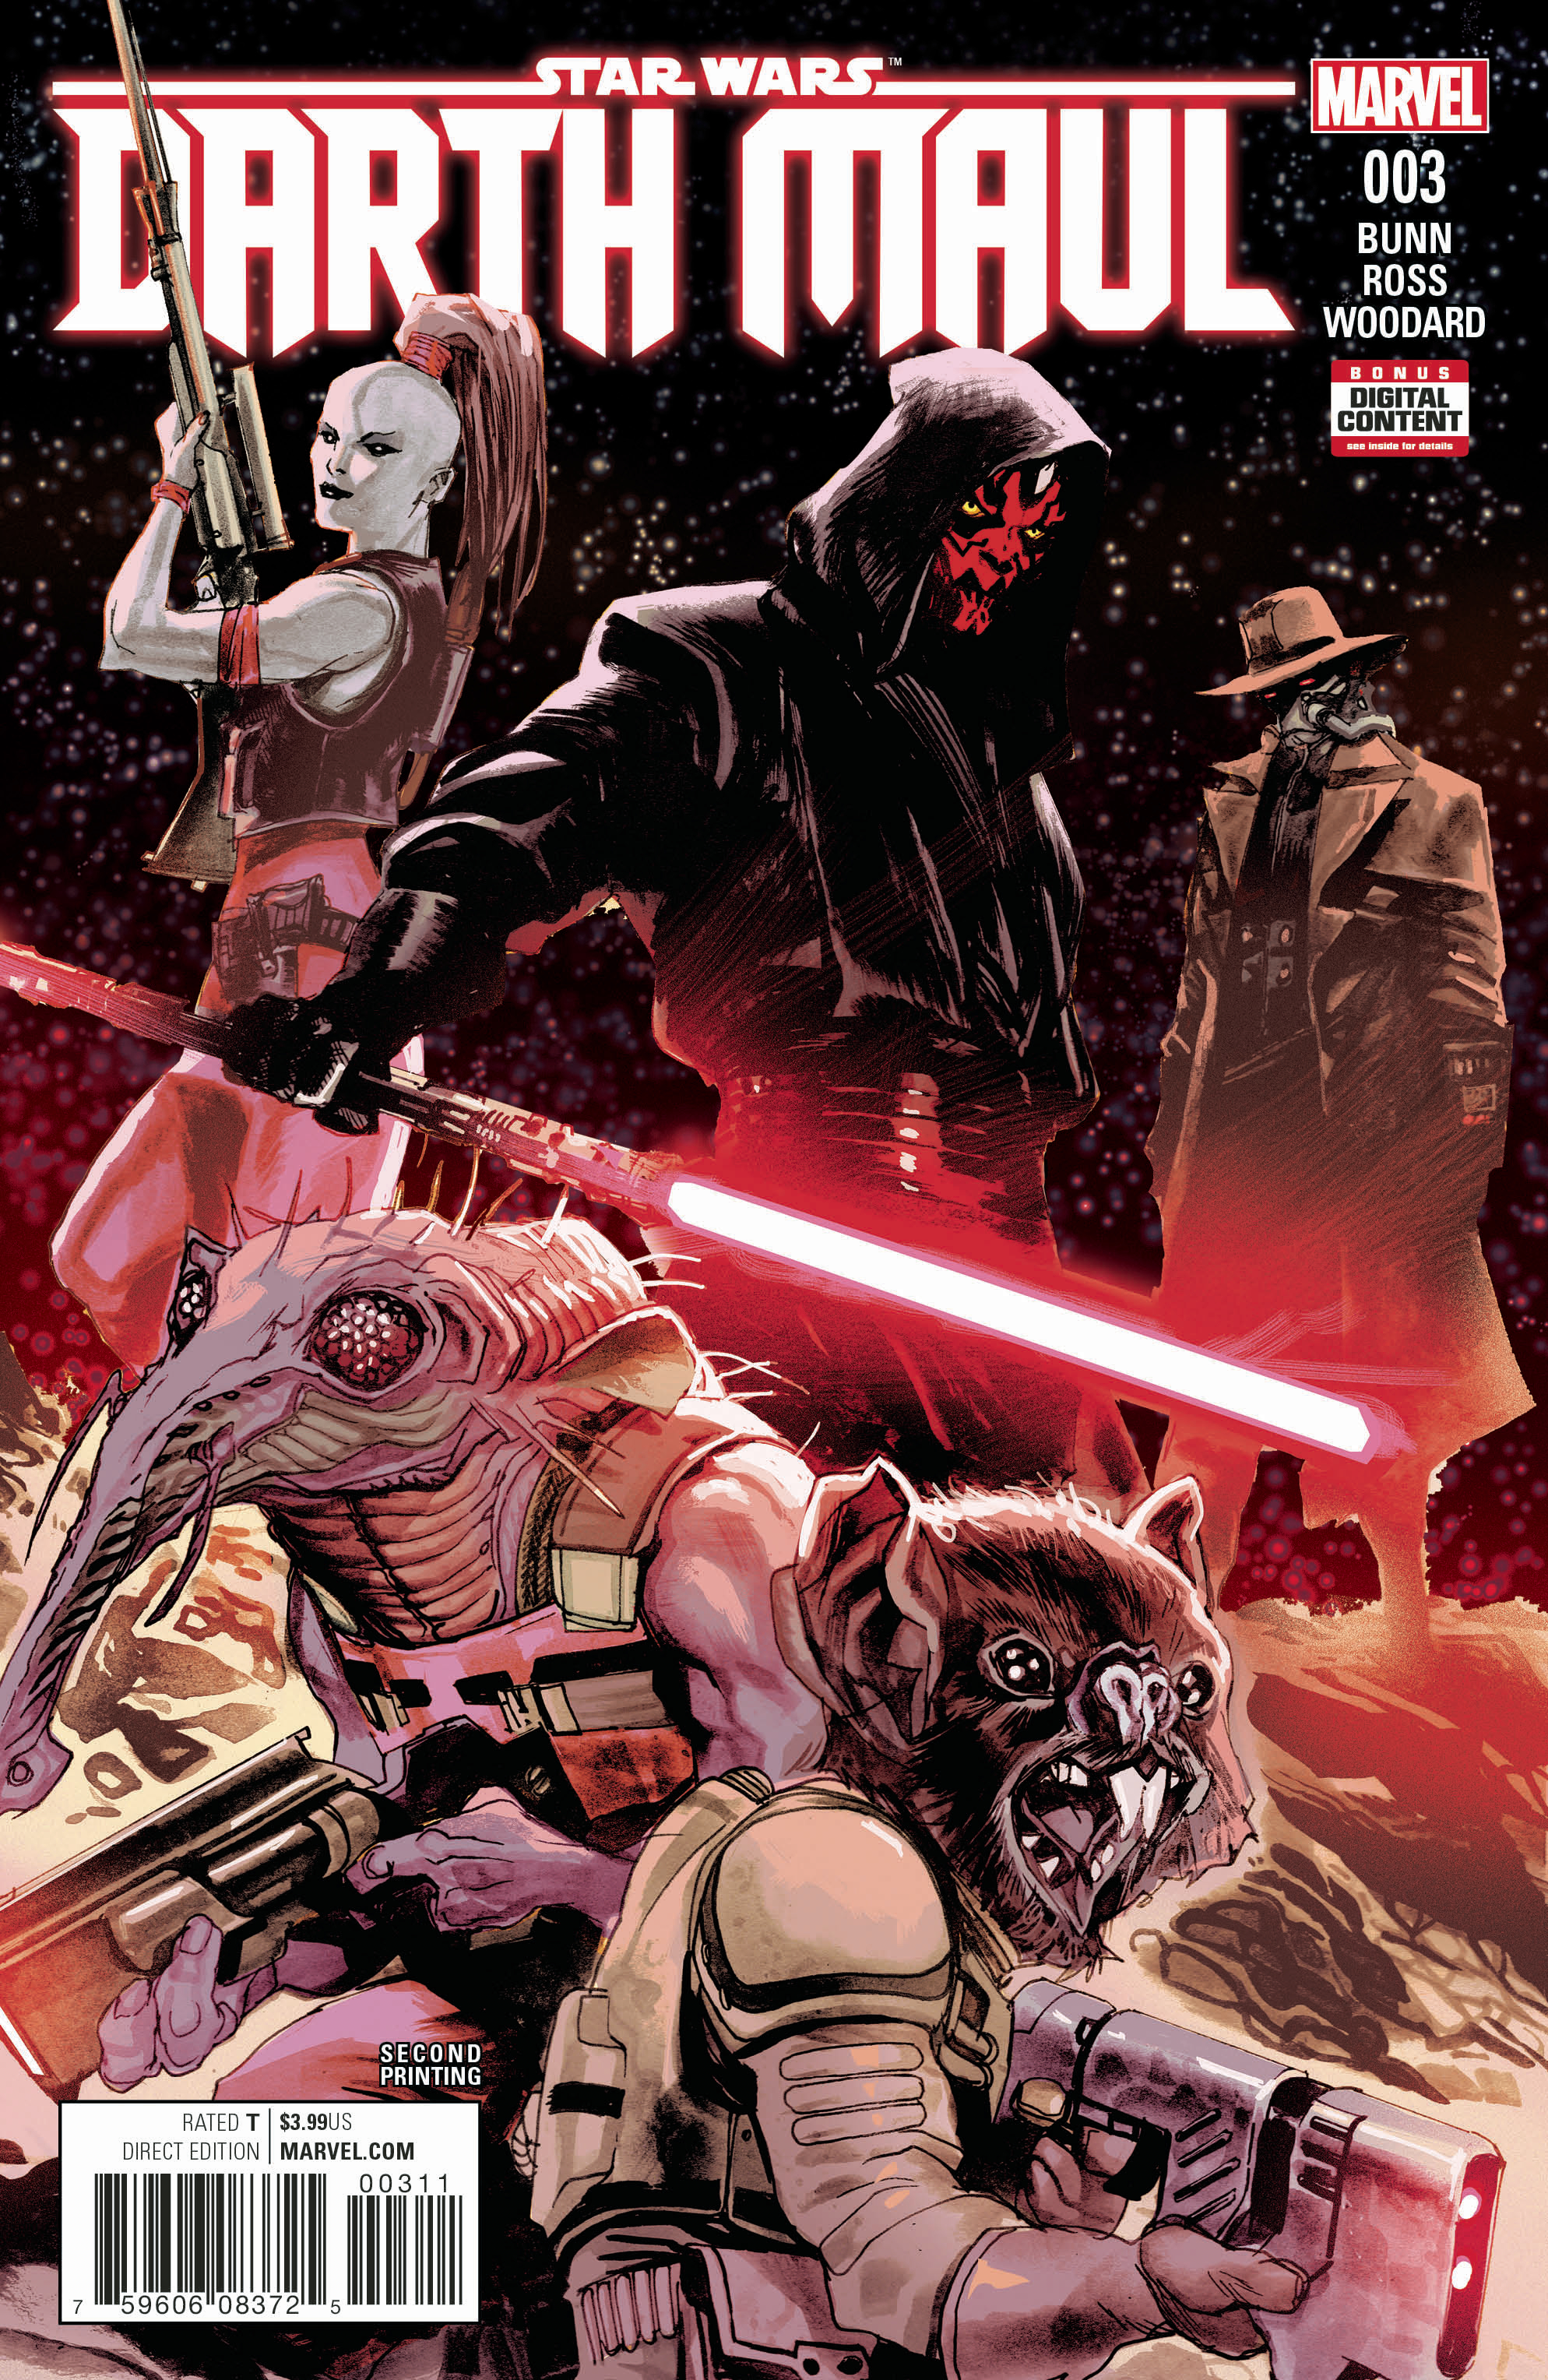 STAR WARS DARTH MAUL #3